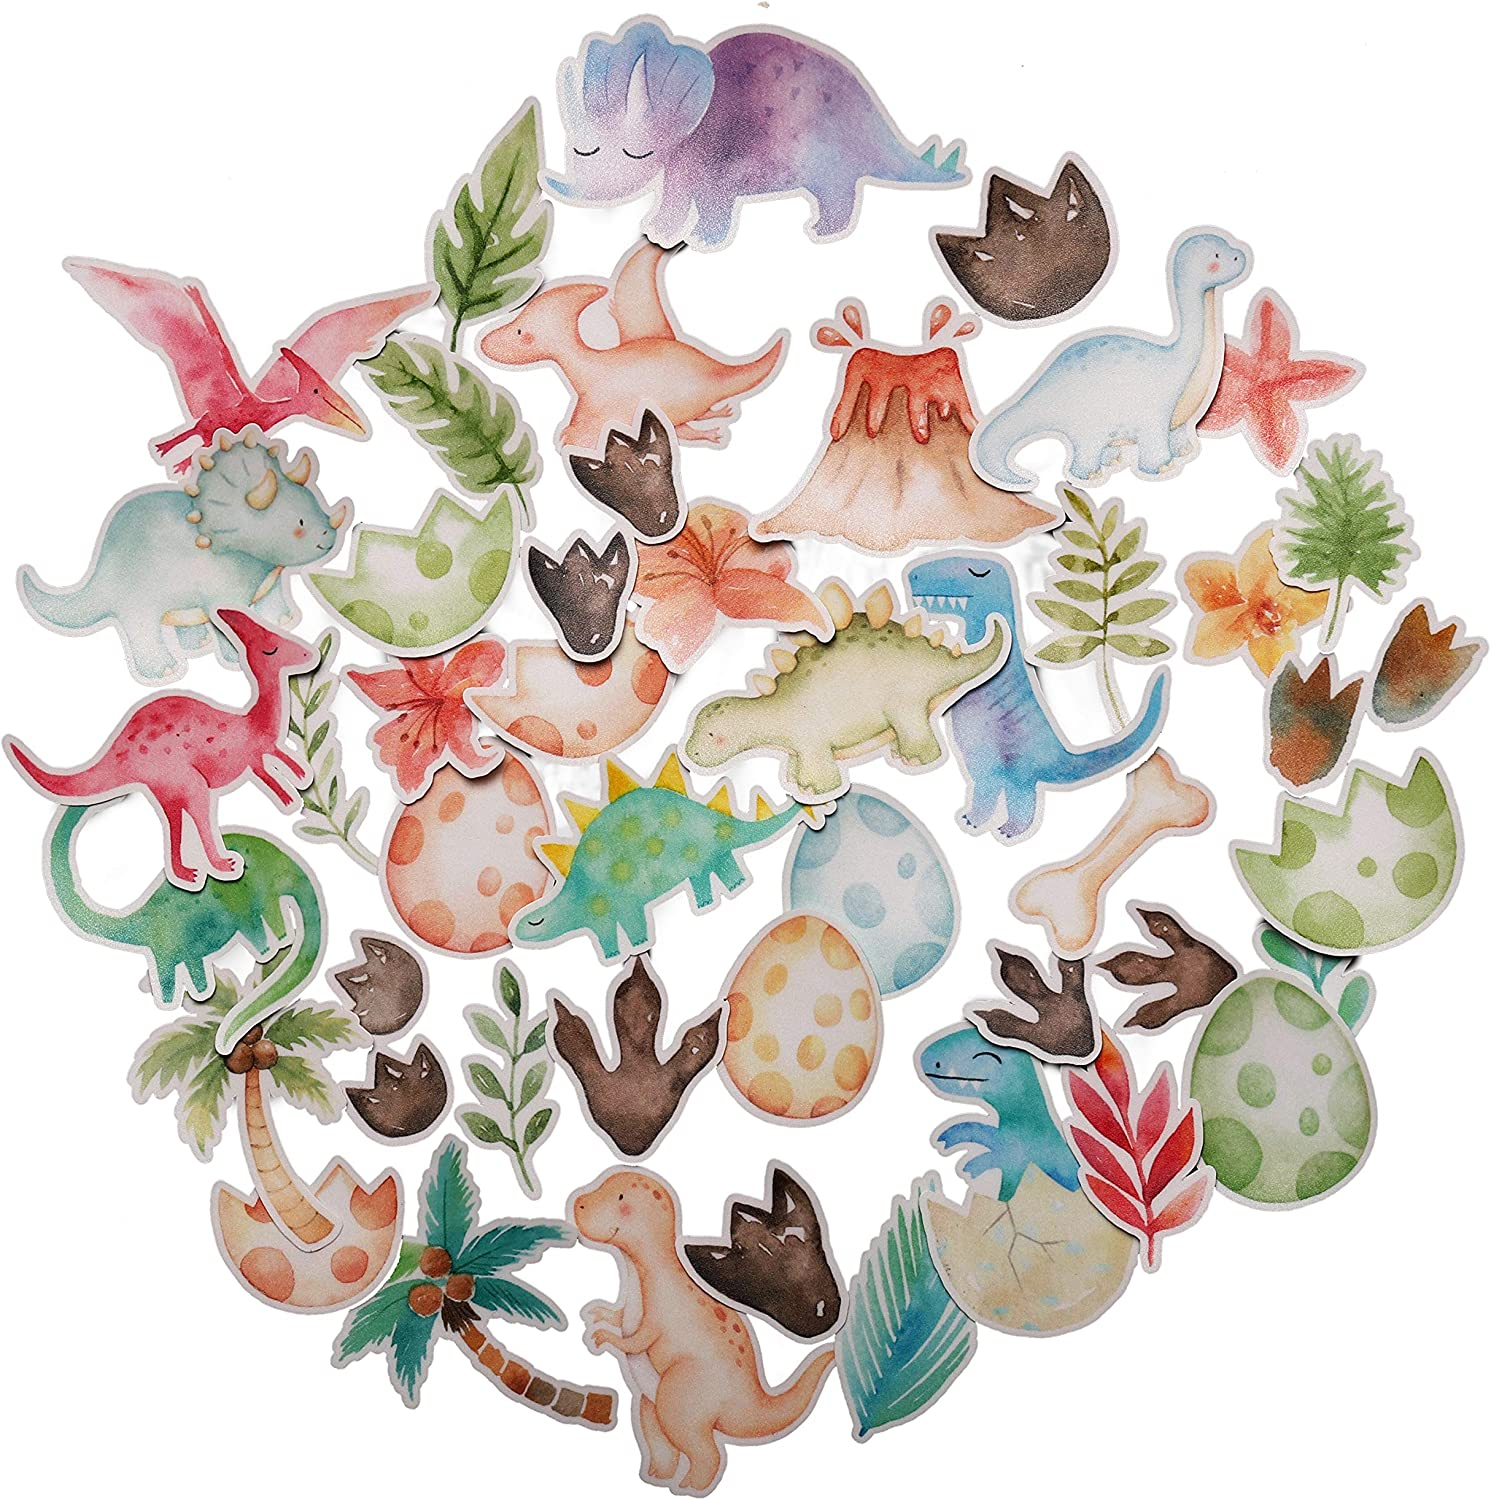 Navy Peony Fun Dinosaur Stickers for Kids (44 Pack) - Small, Cute, Waterproof and Durable   Assorted Animal Decals for Party Favors, Laptops, Water Bottles